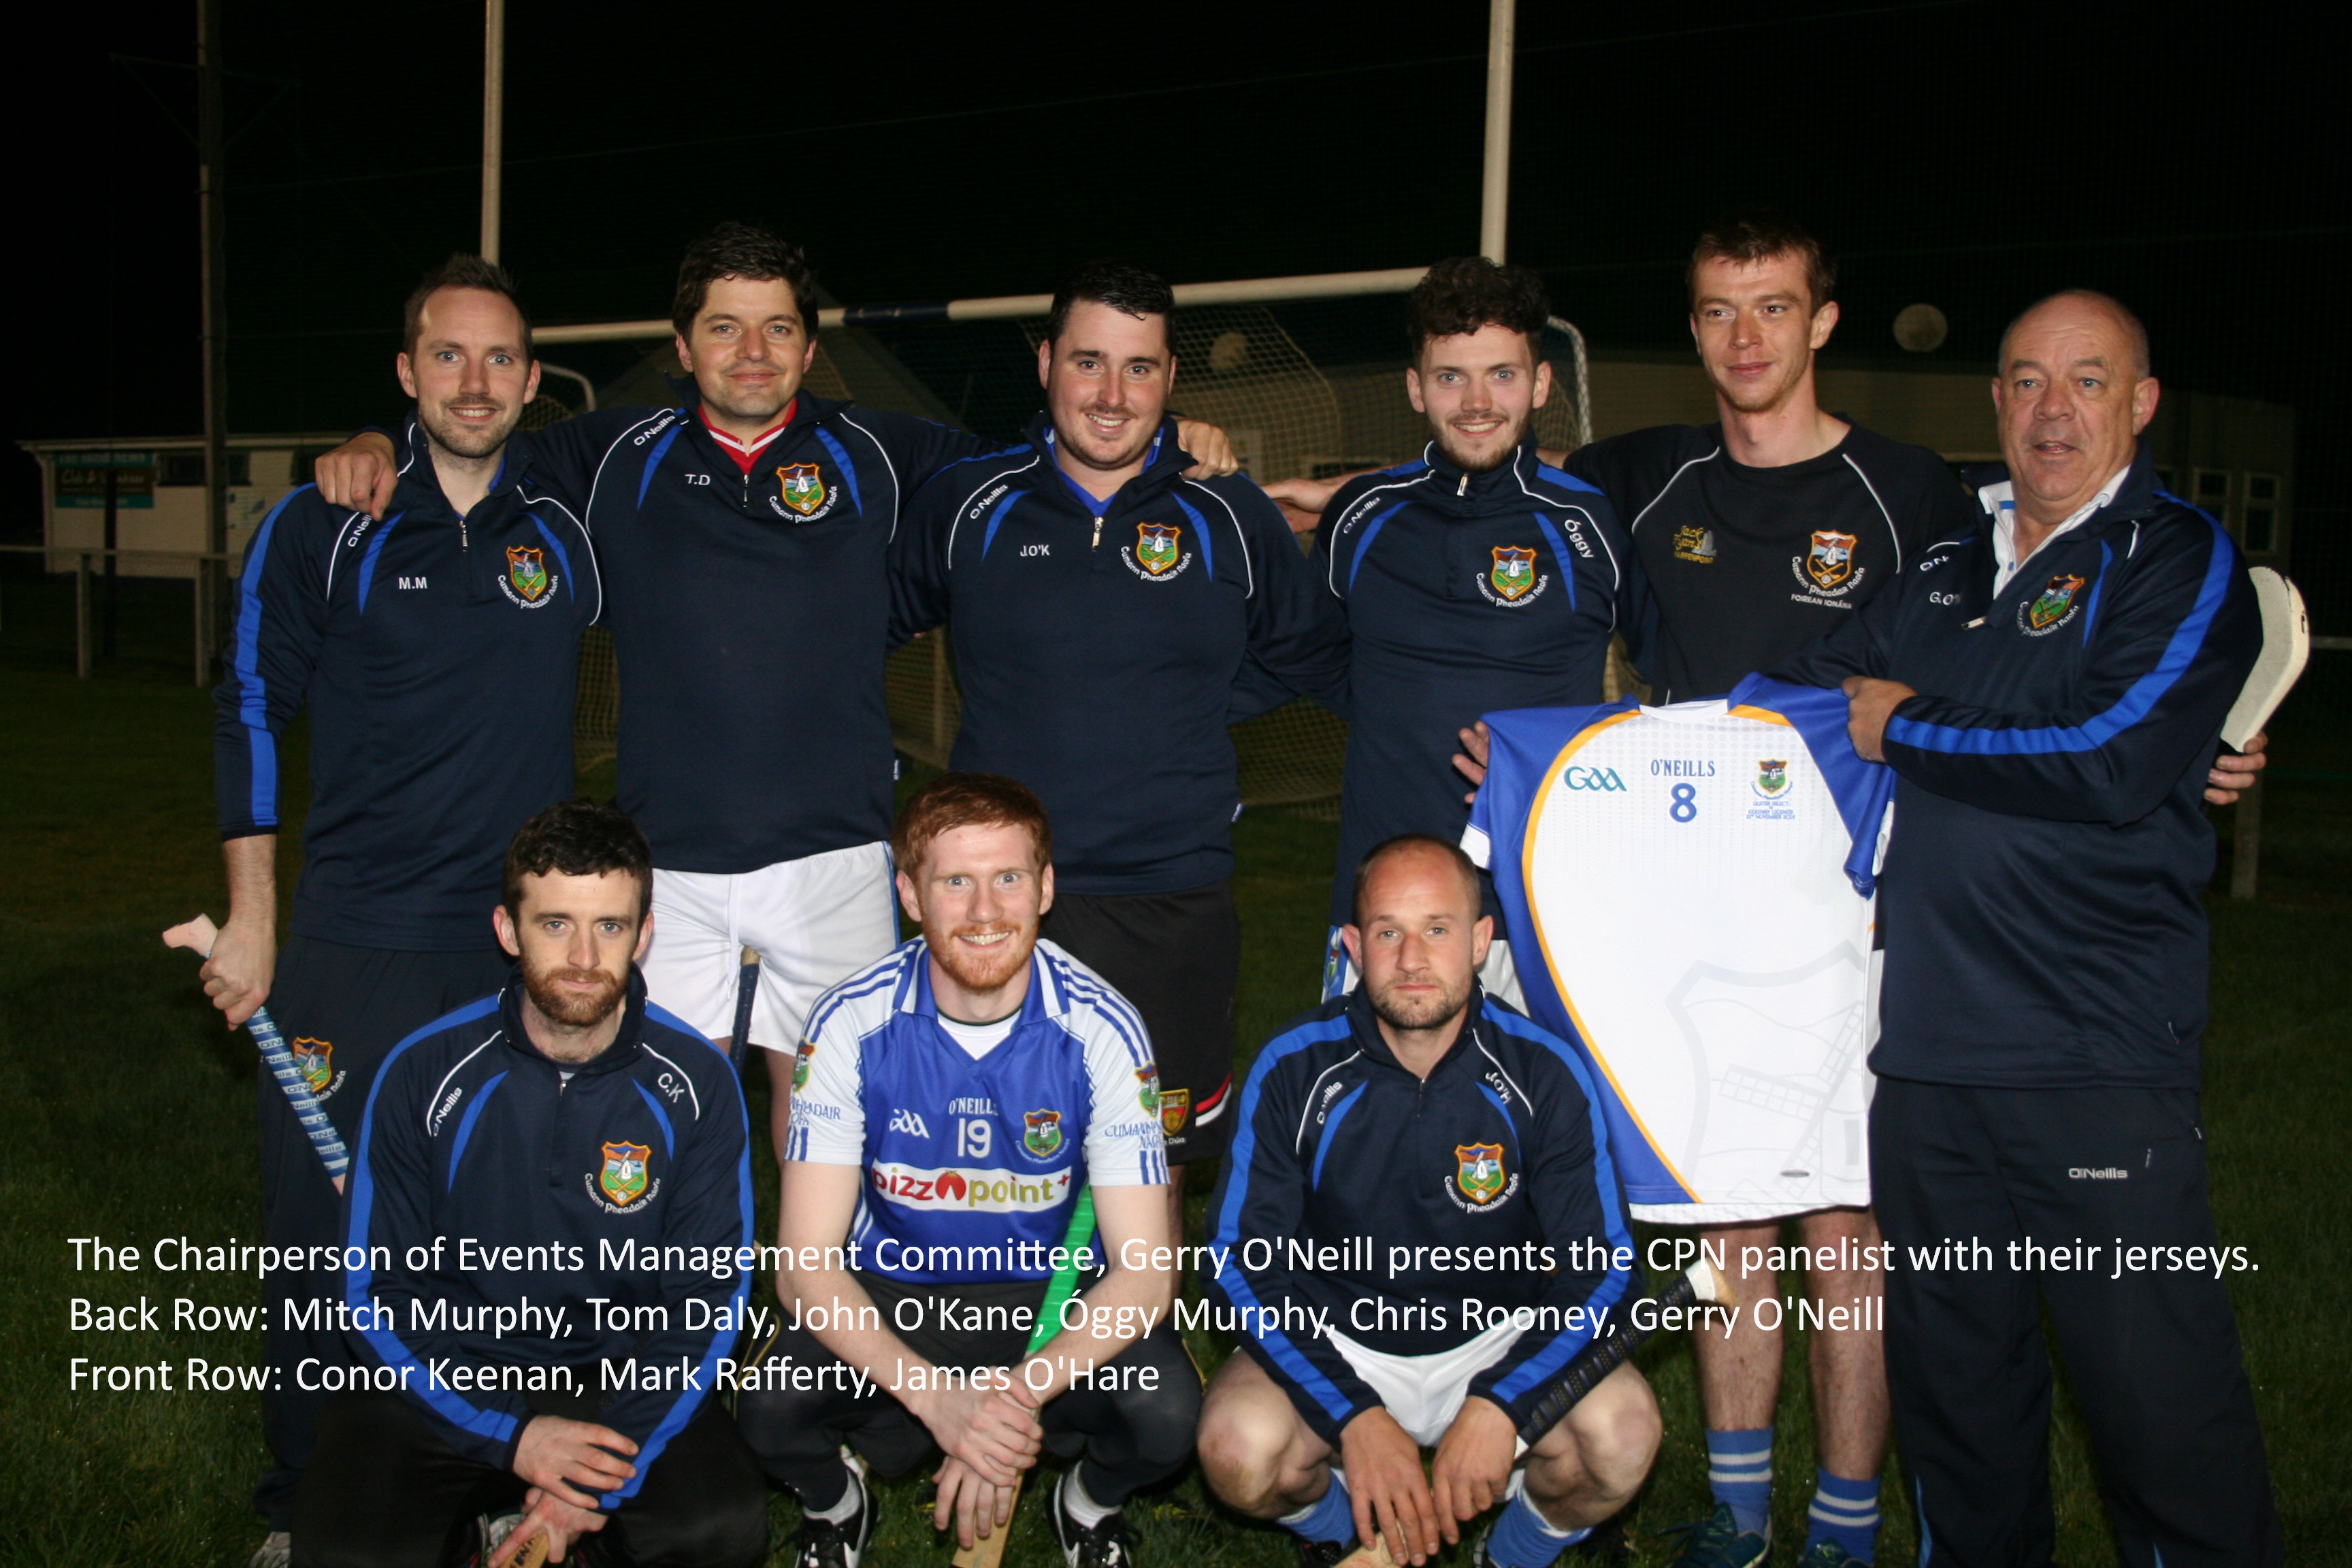 Senior Hurlers join CPN/Ulster panel for Game of Legends